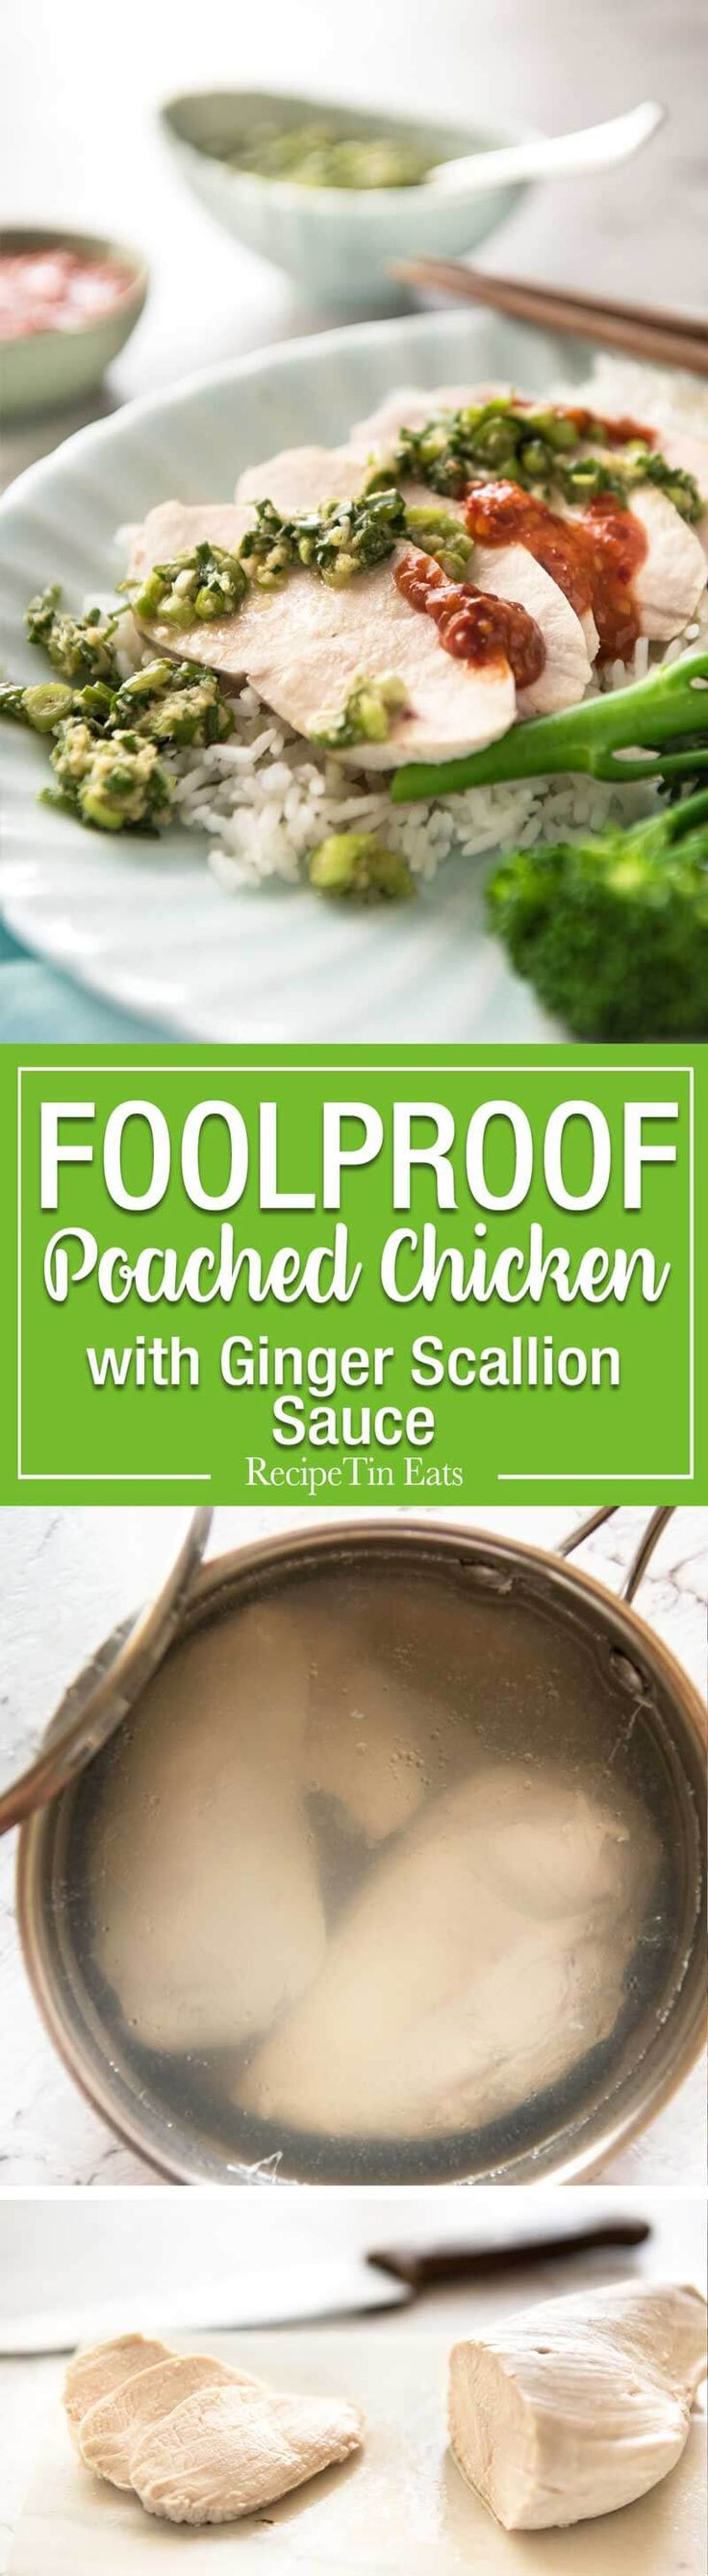 Extra juicy perfect Poached Chicken Breast guaranteed to work every single time! This technique is so easy, it will blow your mind. Served with a gorgeous Ginger Scallion (Shallot) Sauce. www.recipetineats.com